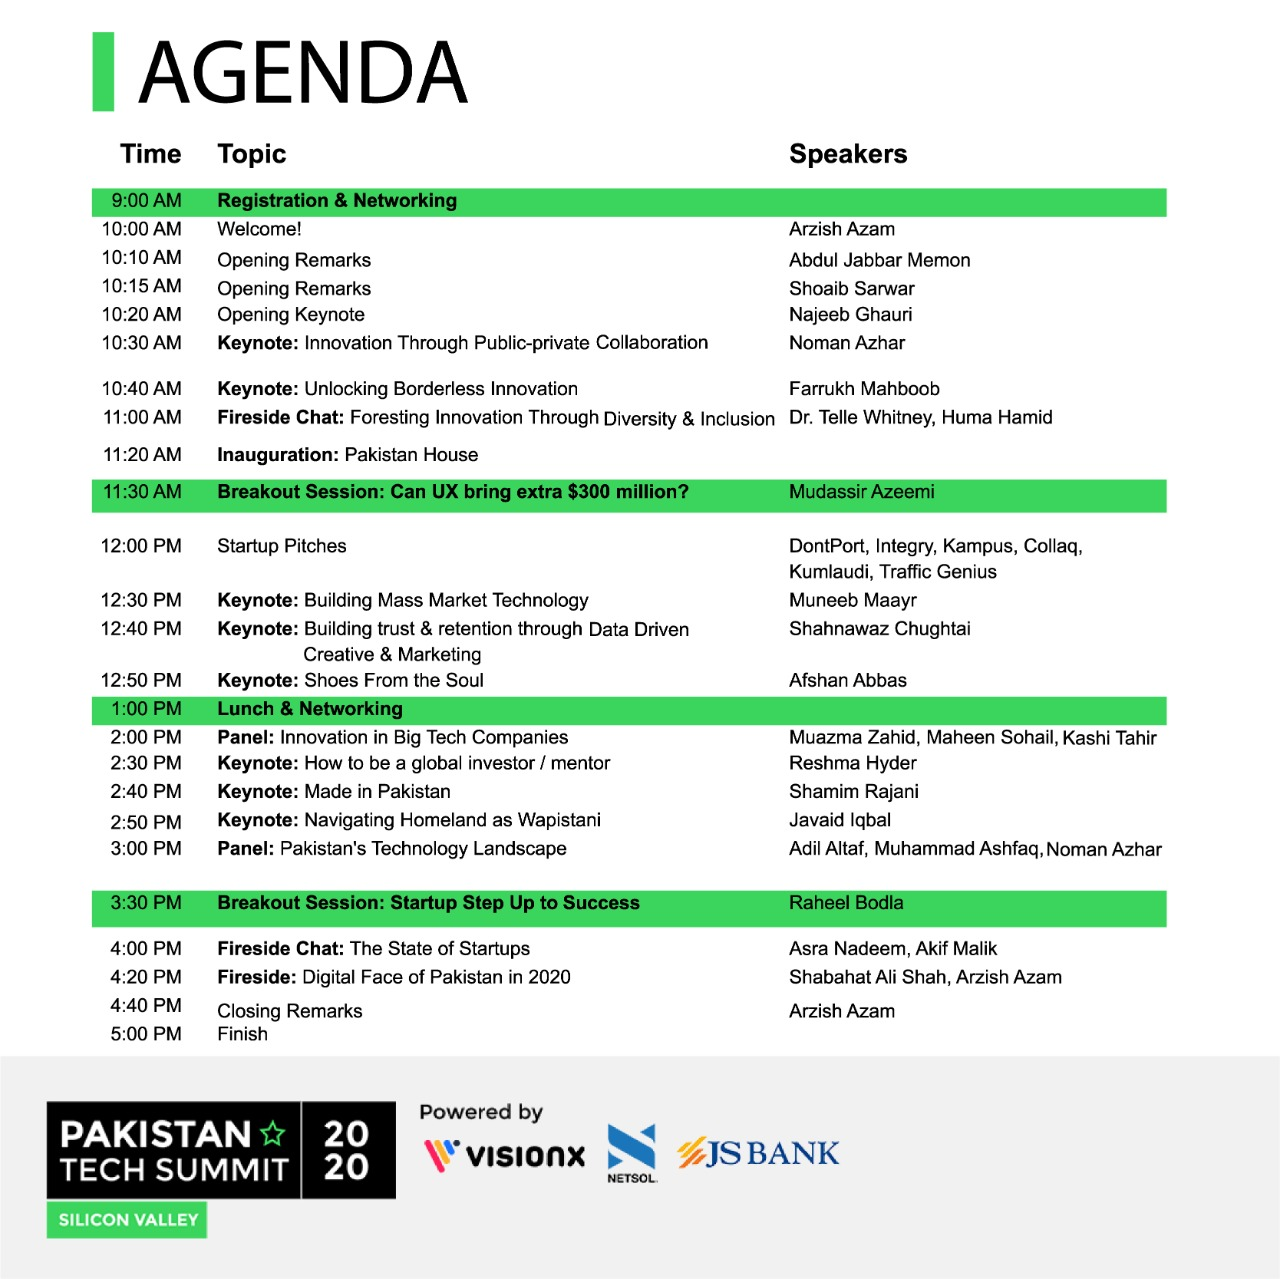 Pakistan Tech Summit - Agenda